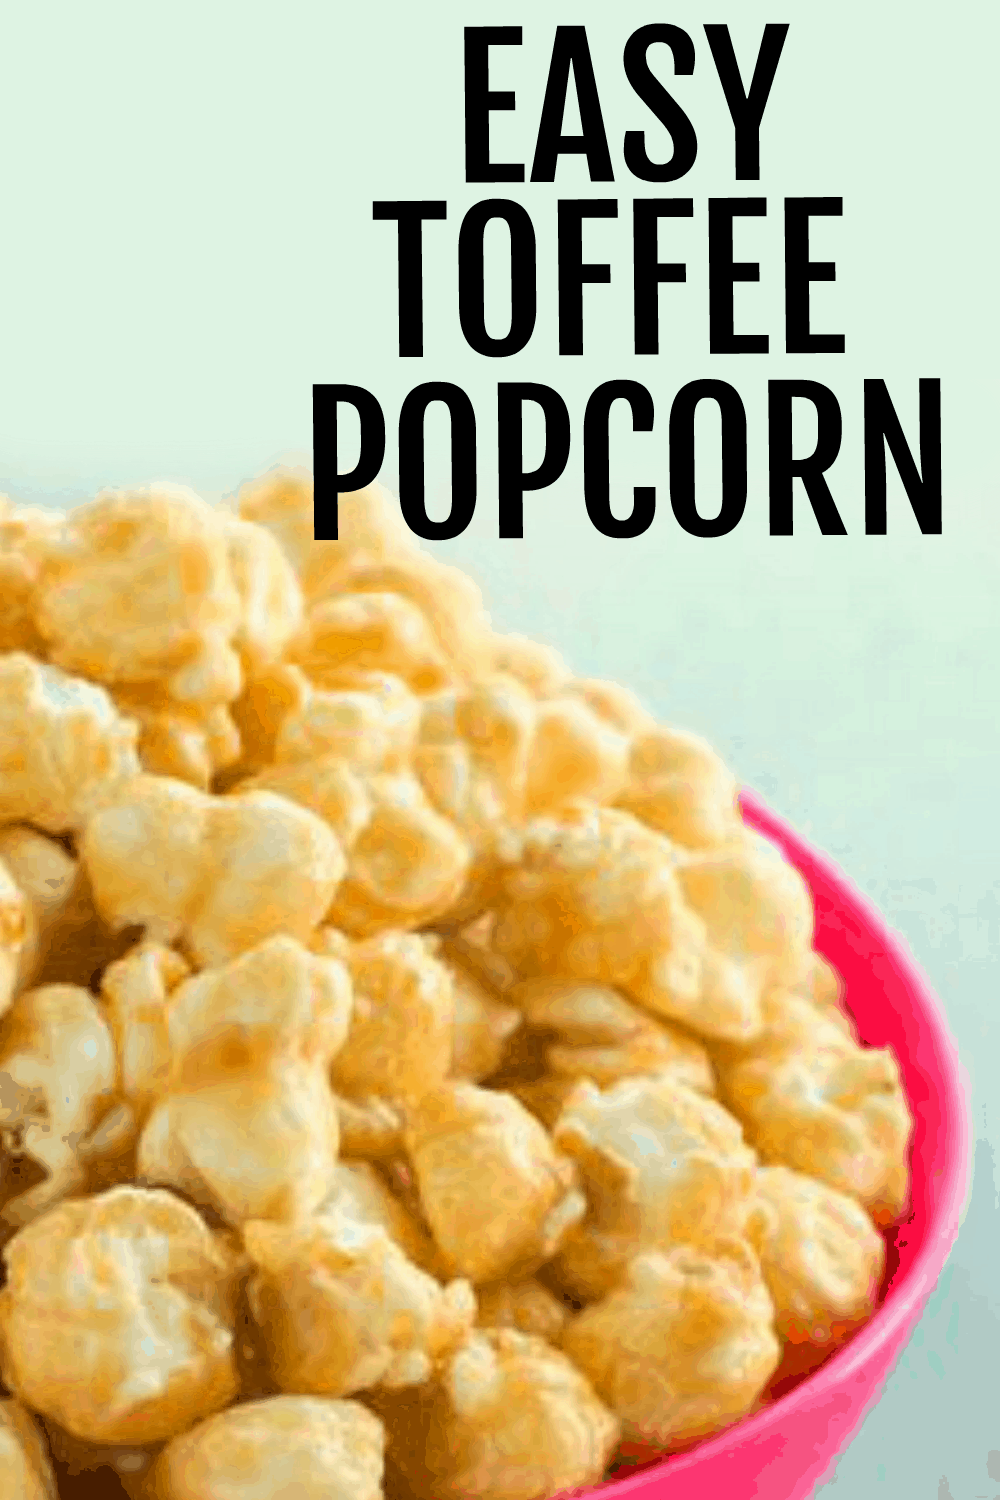 EASY TOFFEE POPCORN RECIPE